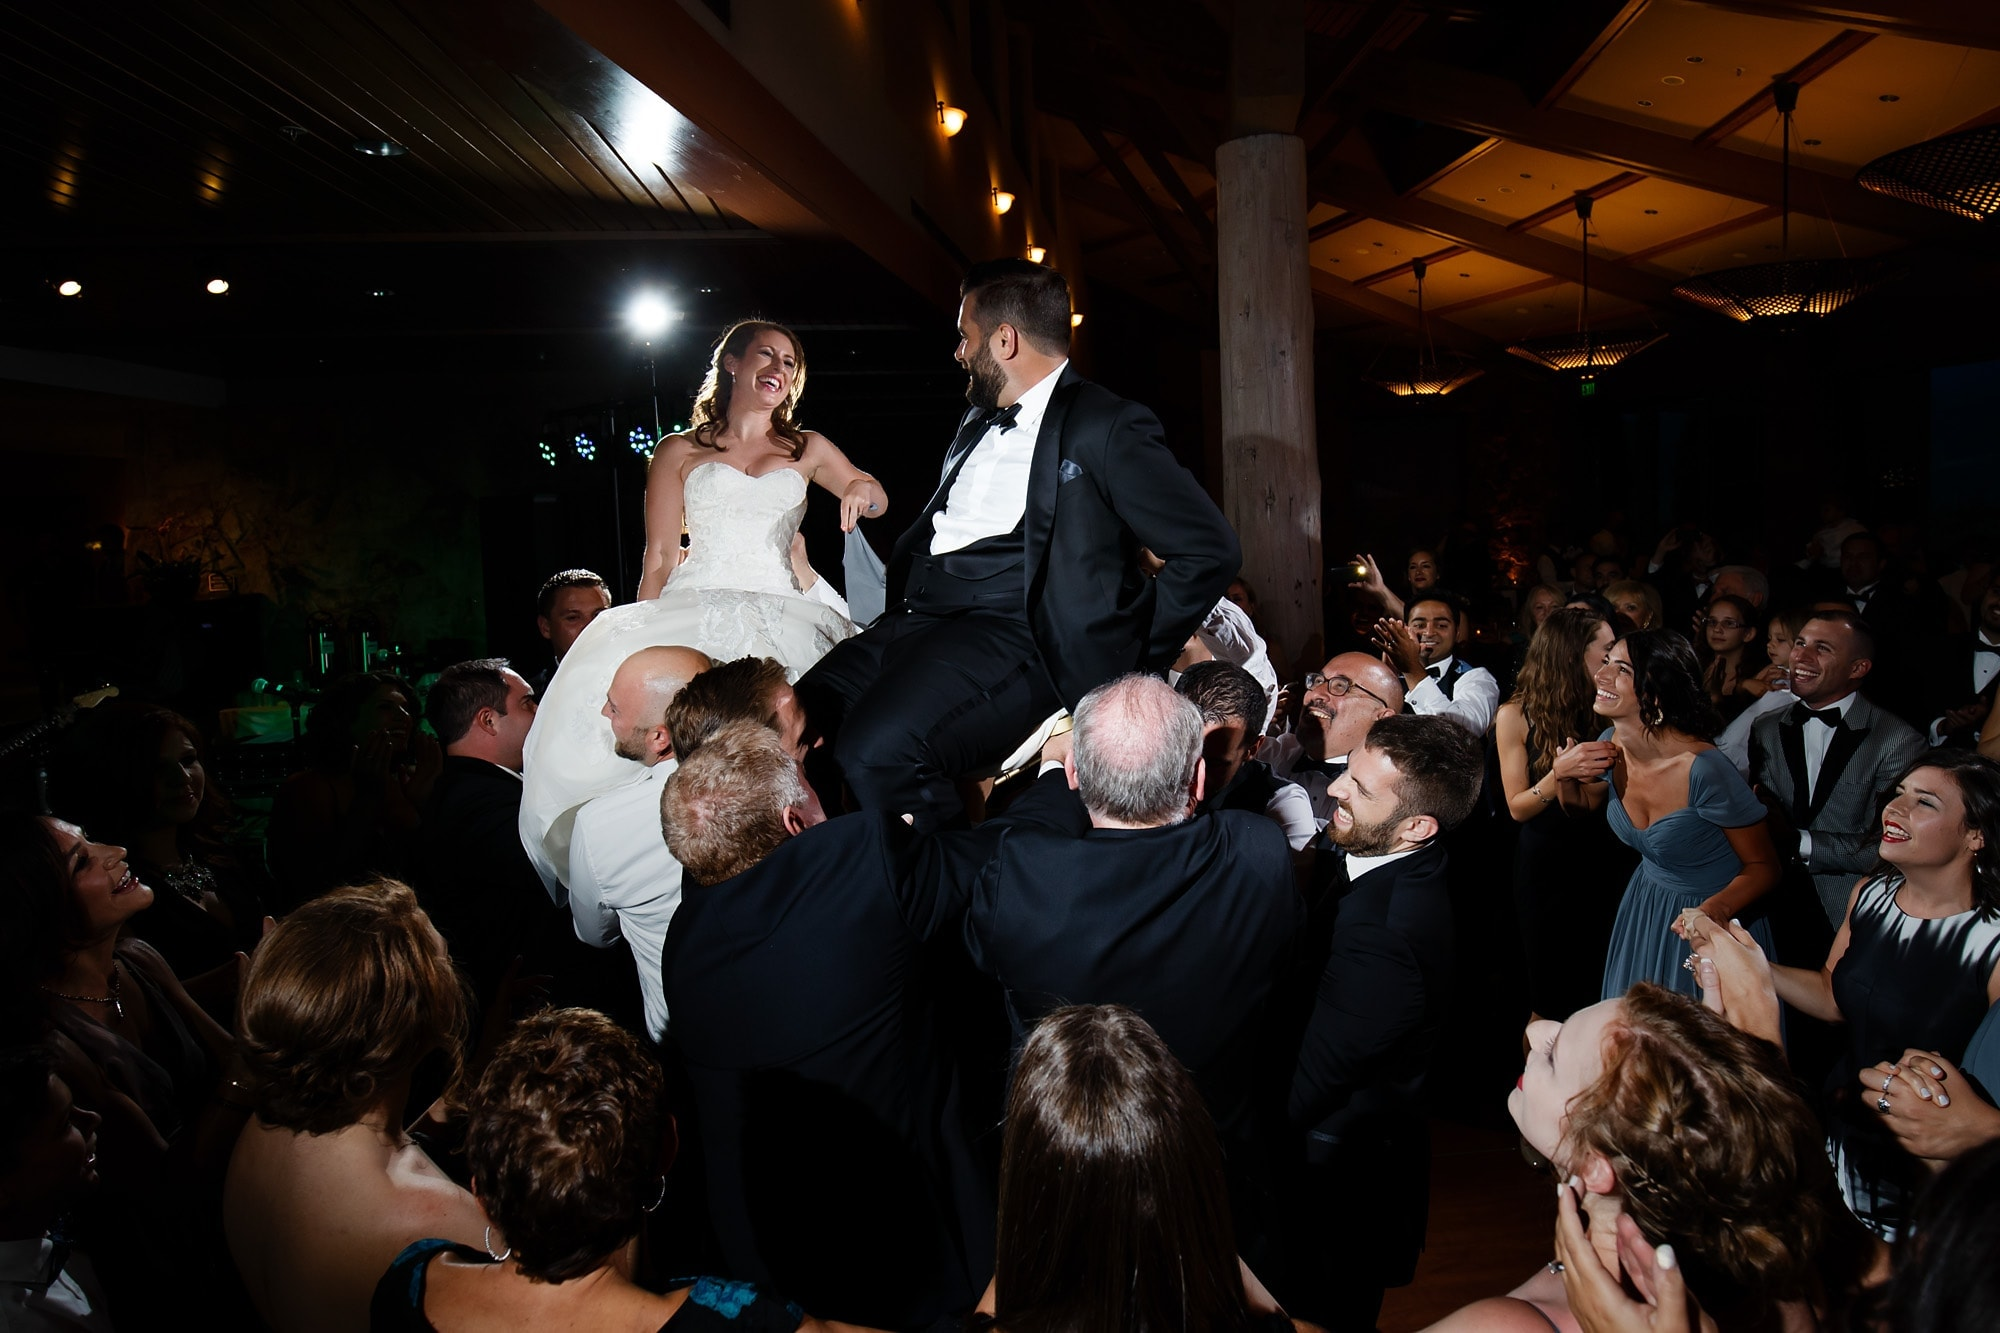 Devan and Joshua are raised on chairs during the horah dance at their wedding reception at Garden of the Gods Club